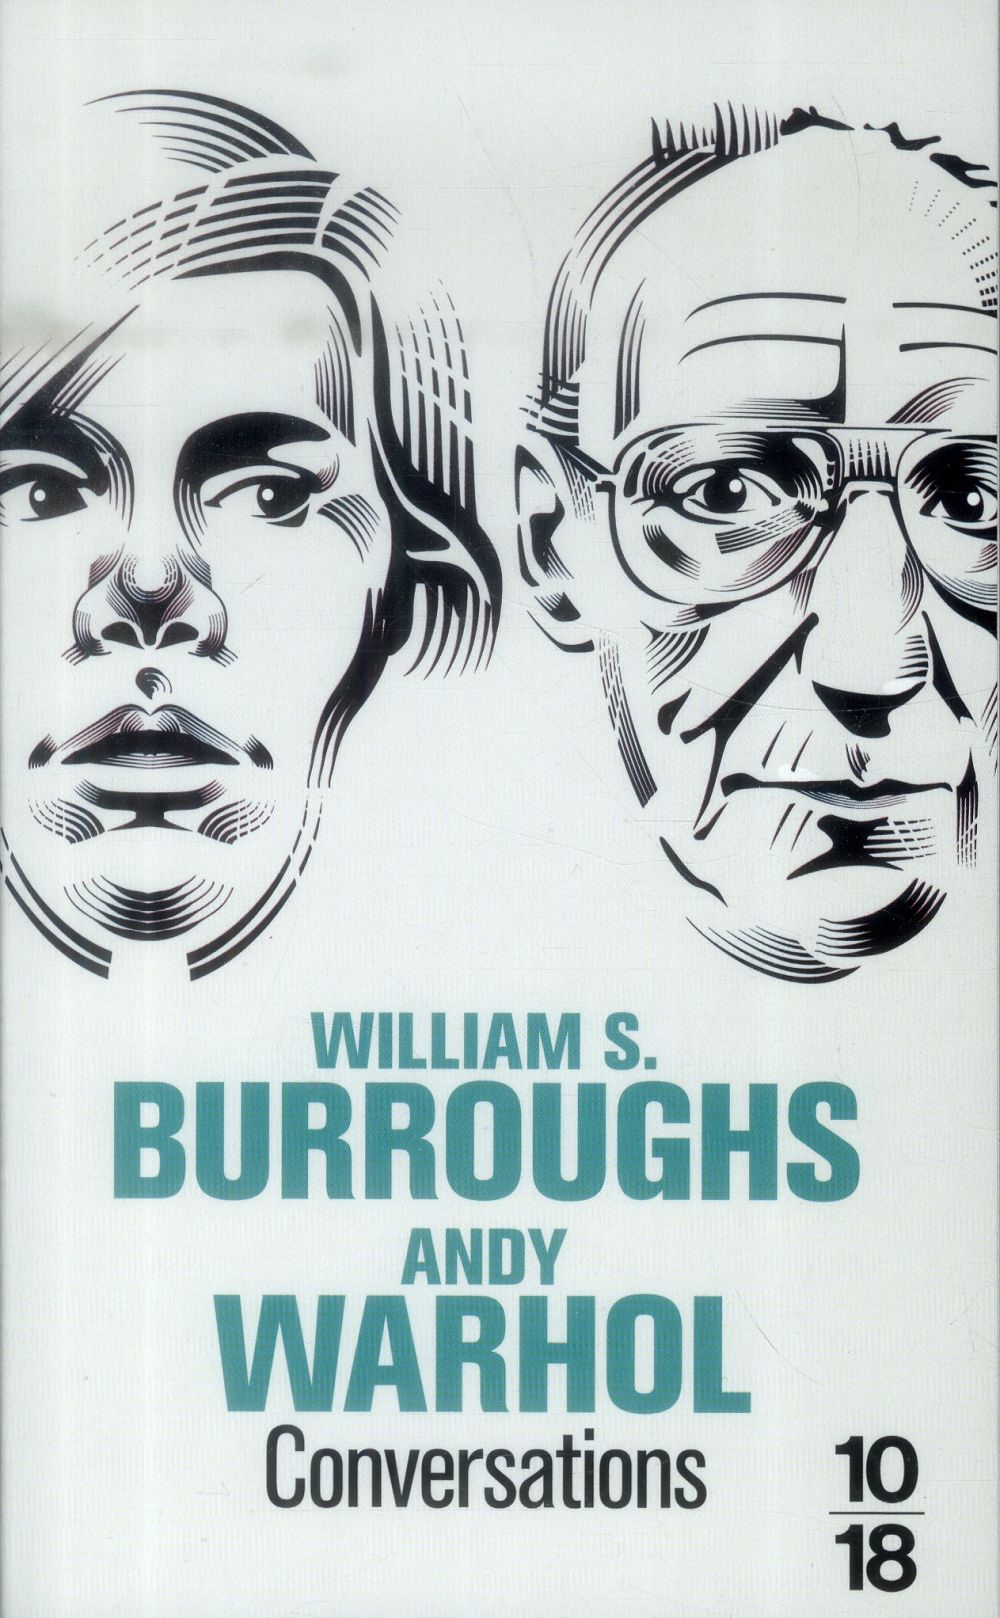 Conversations ; William S. Burroughs - Andy Warhol